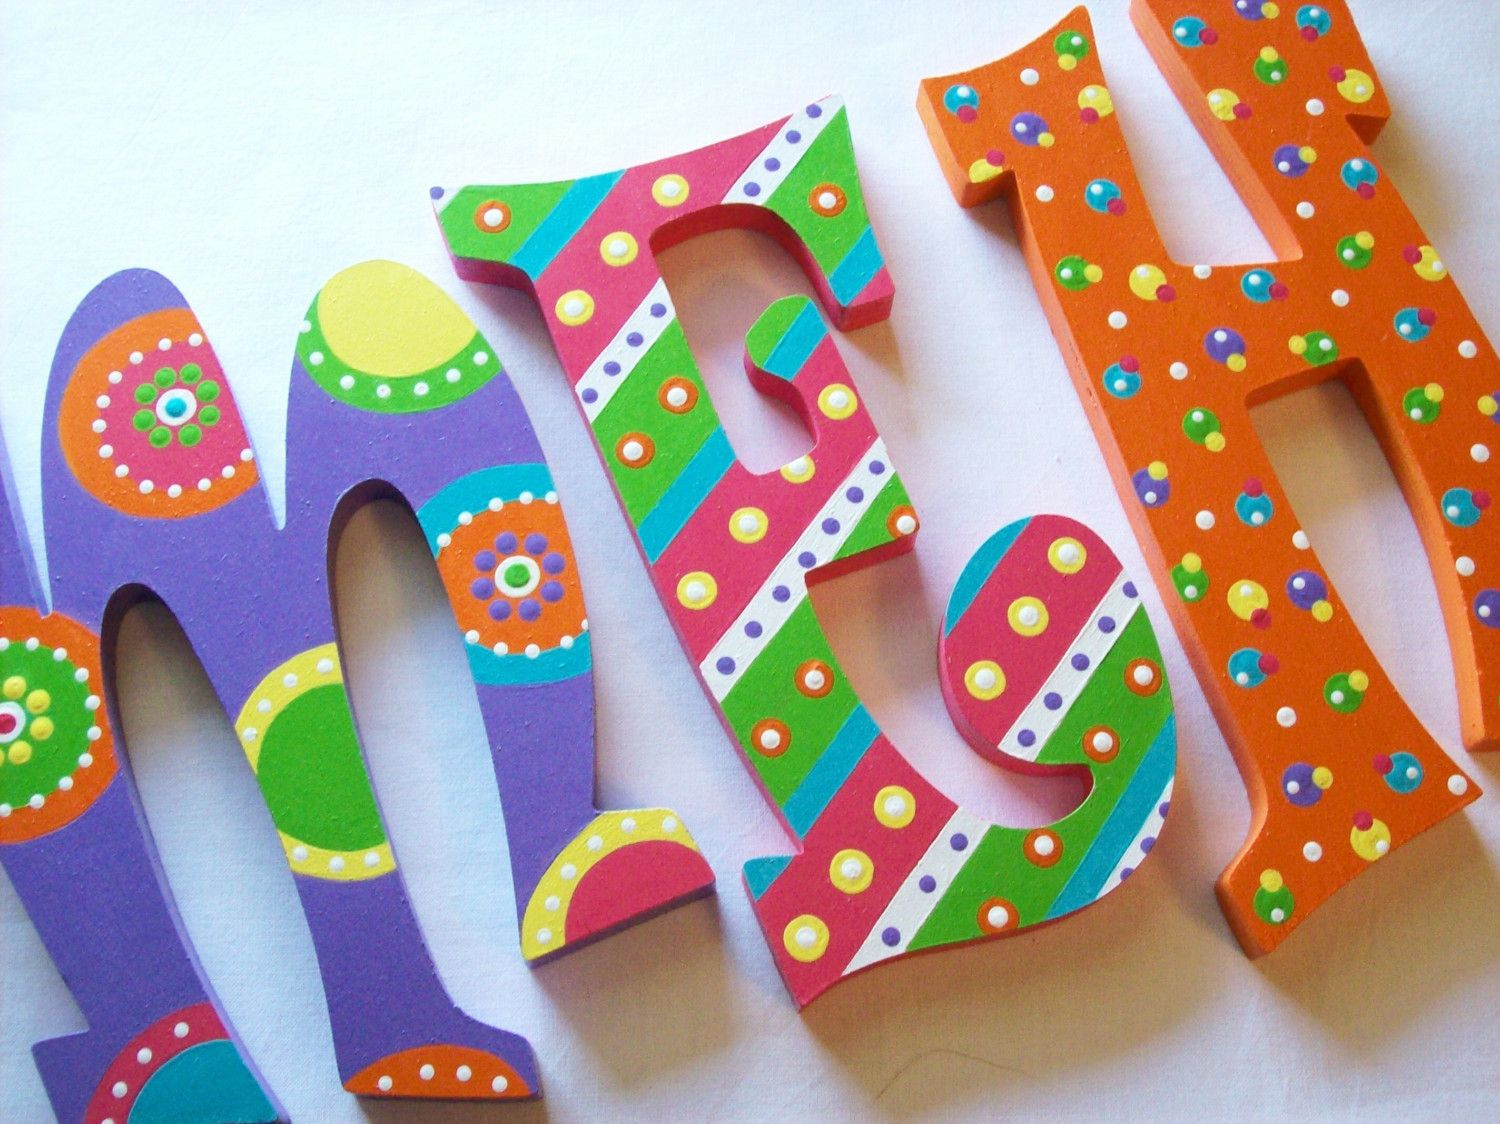 painted wooden letters posh hand painted wooden letters reserved for lexi 12 by poshdots